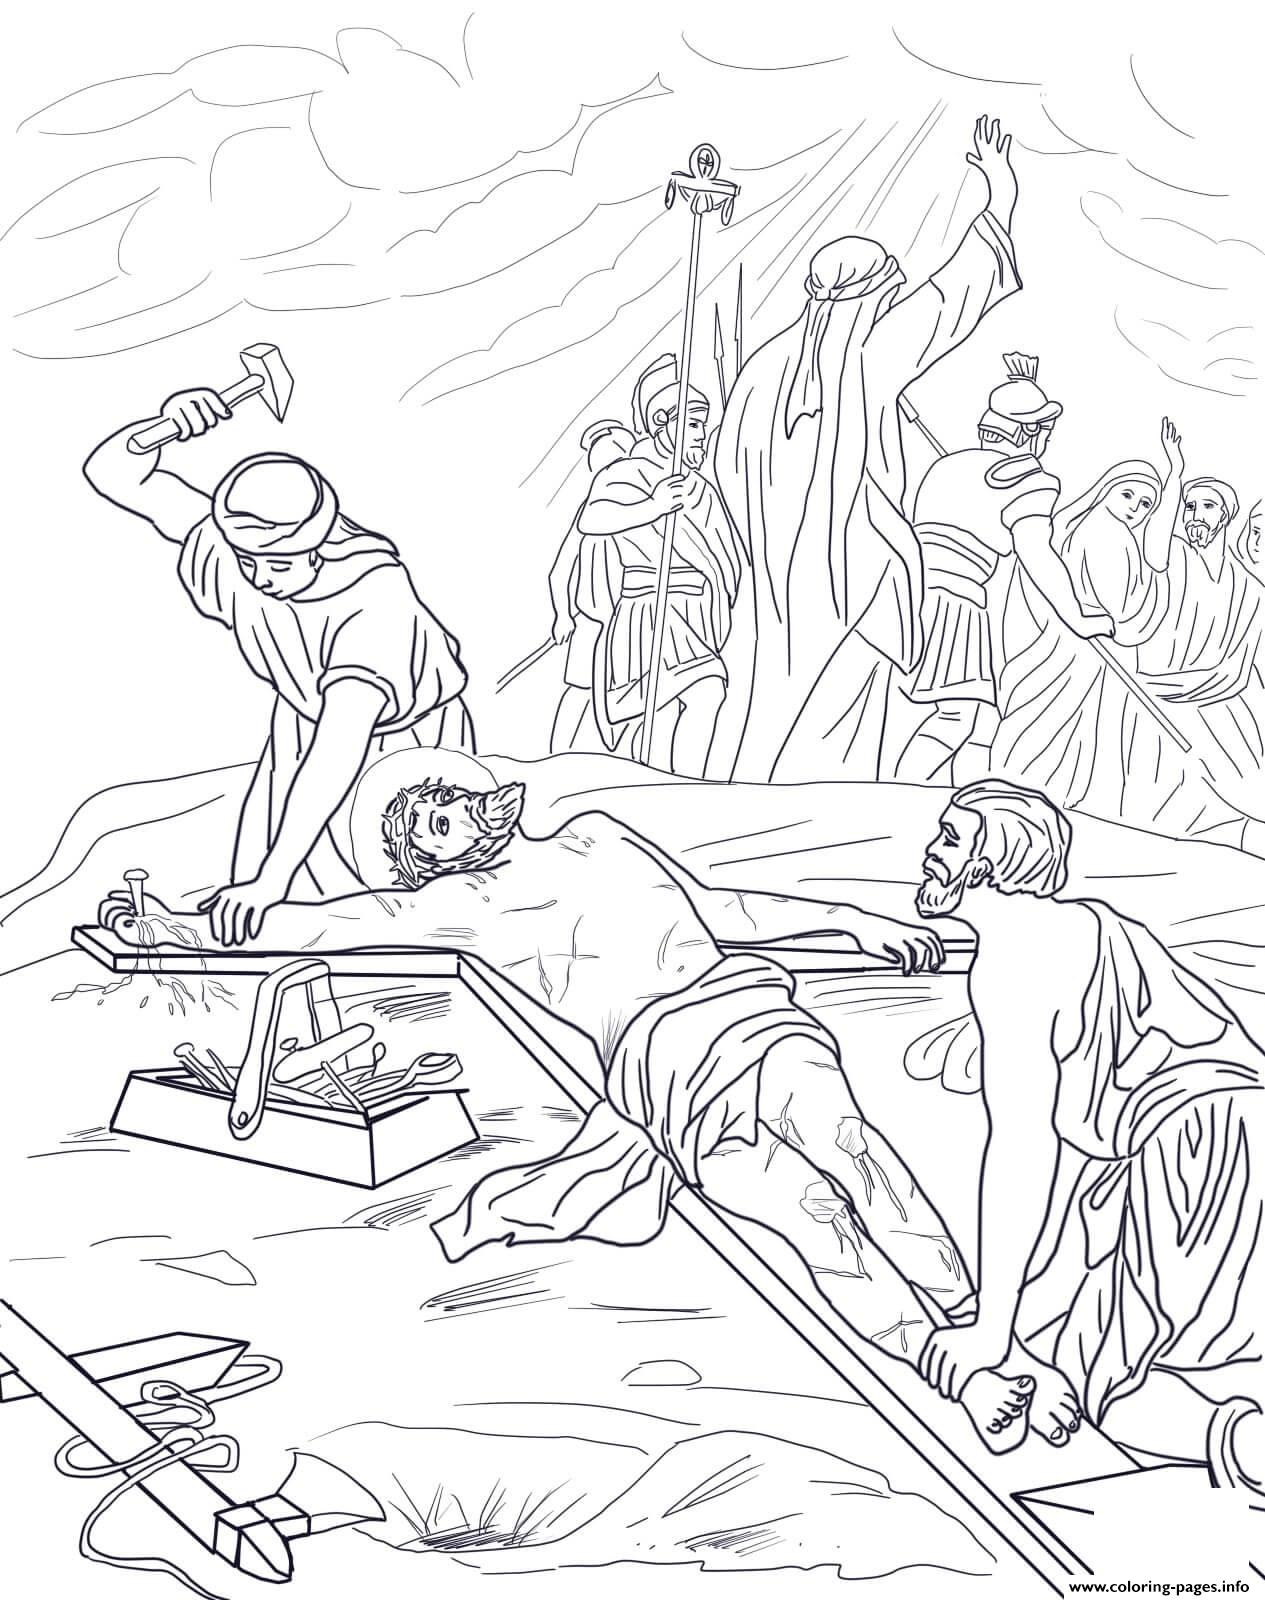 Good Friday 11 Eleventh Station Jesus Is Nailed To The Cross Coloring Pages Printable